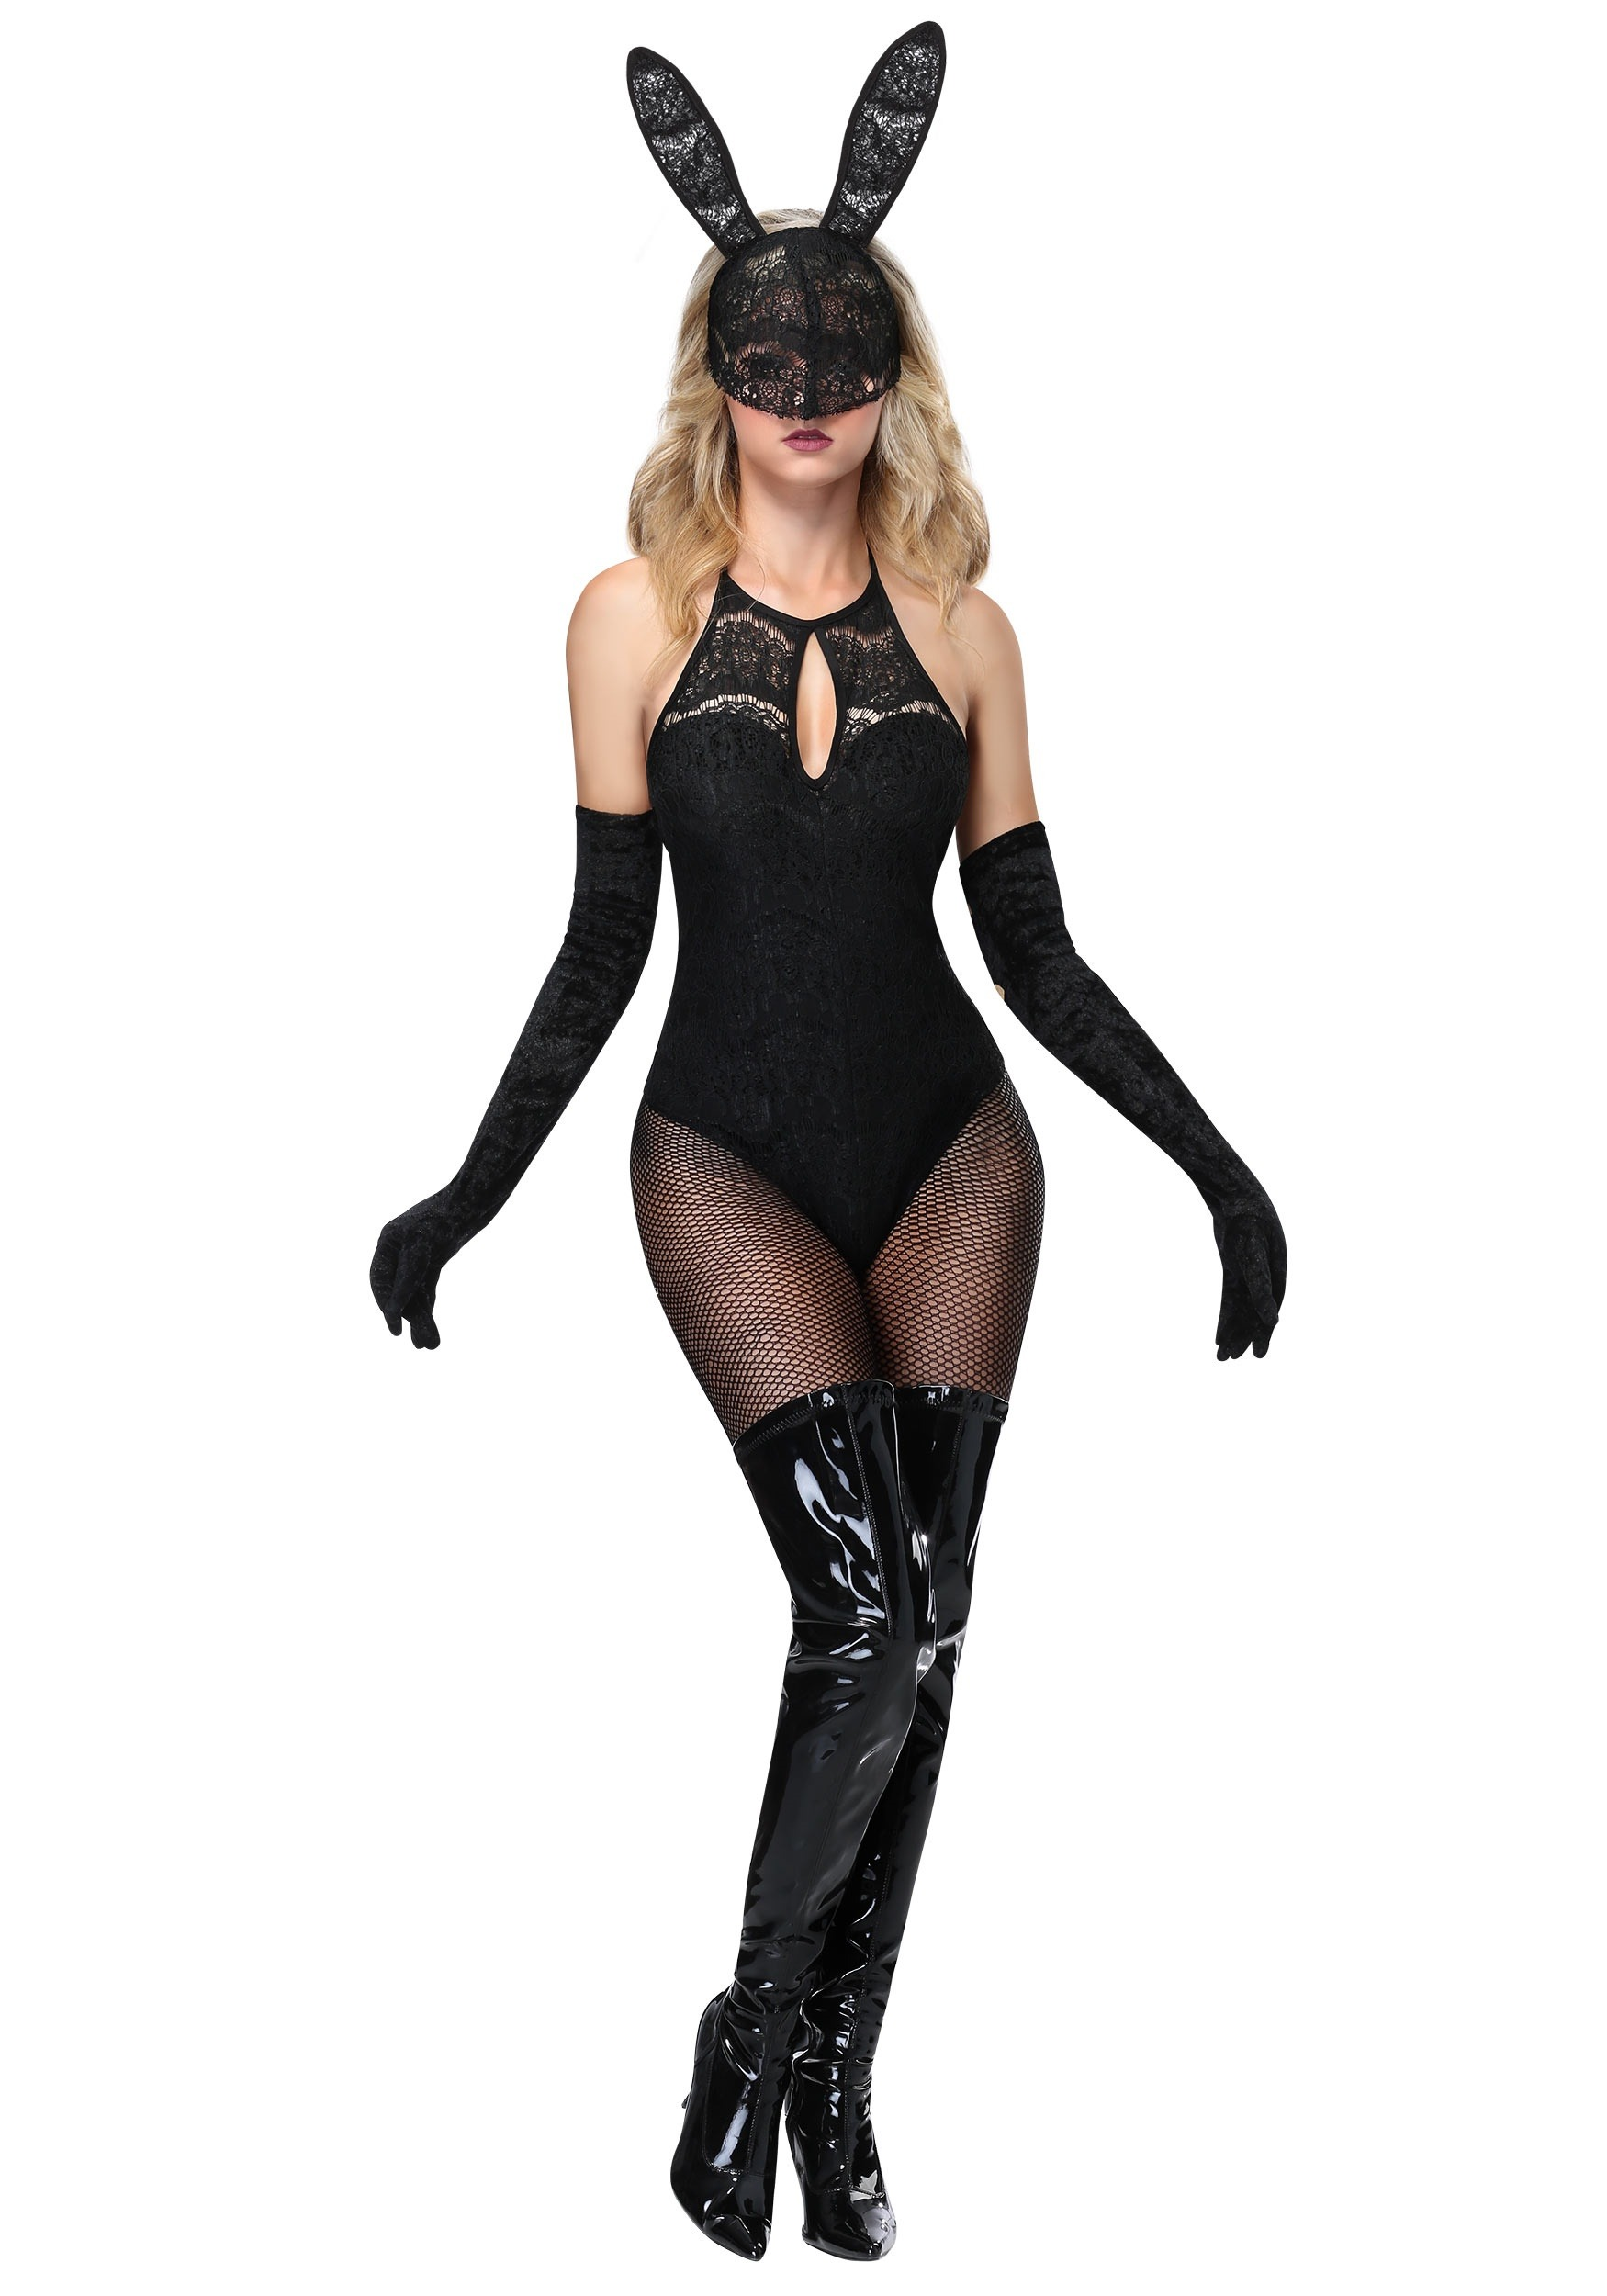 Lace Bunny Costume for Women